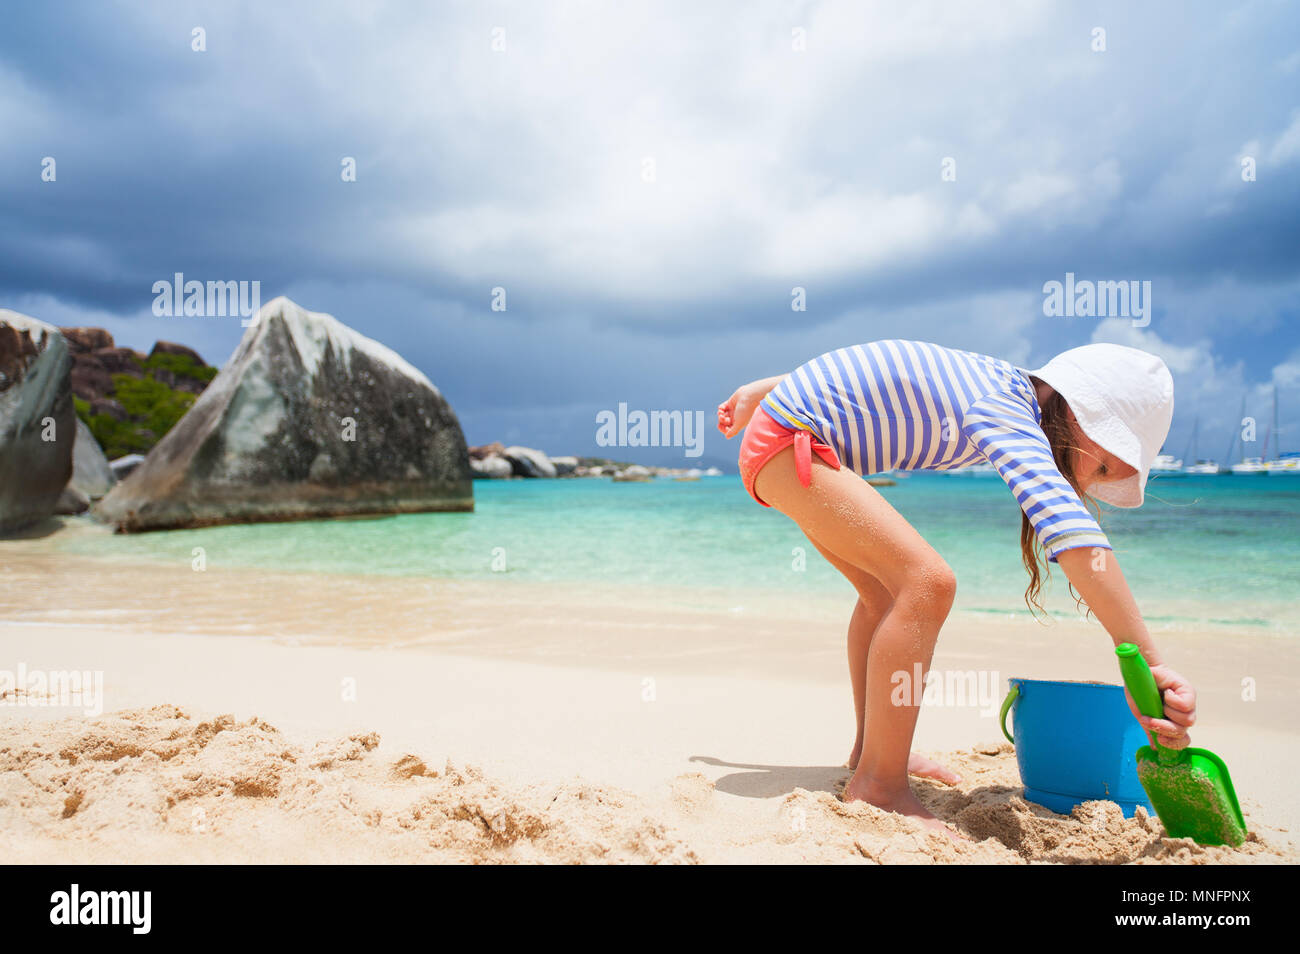 Adorable little girl wearing sun protection rash guard at beach during summer vacation - Stock Image